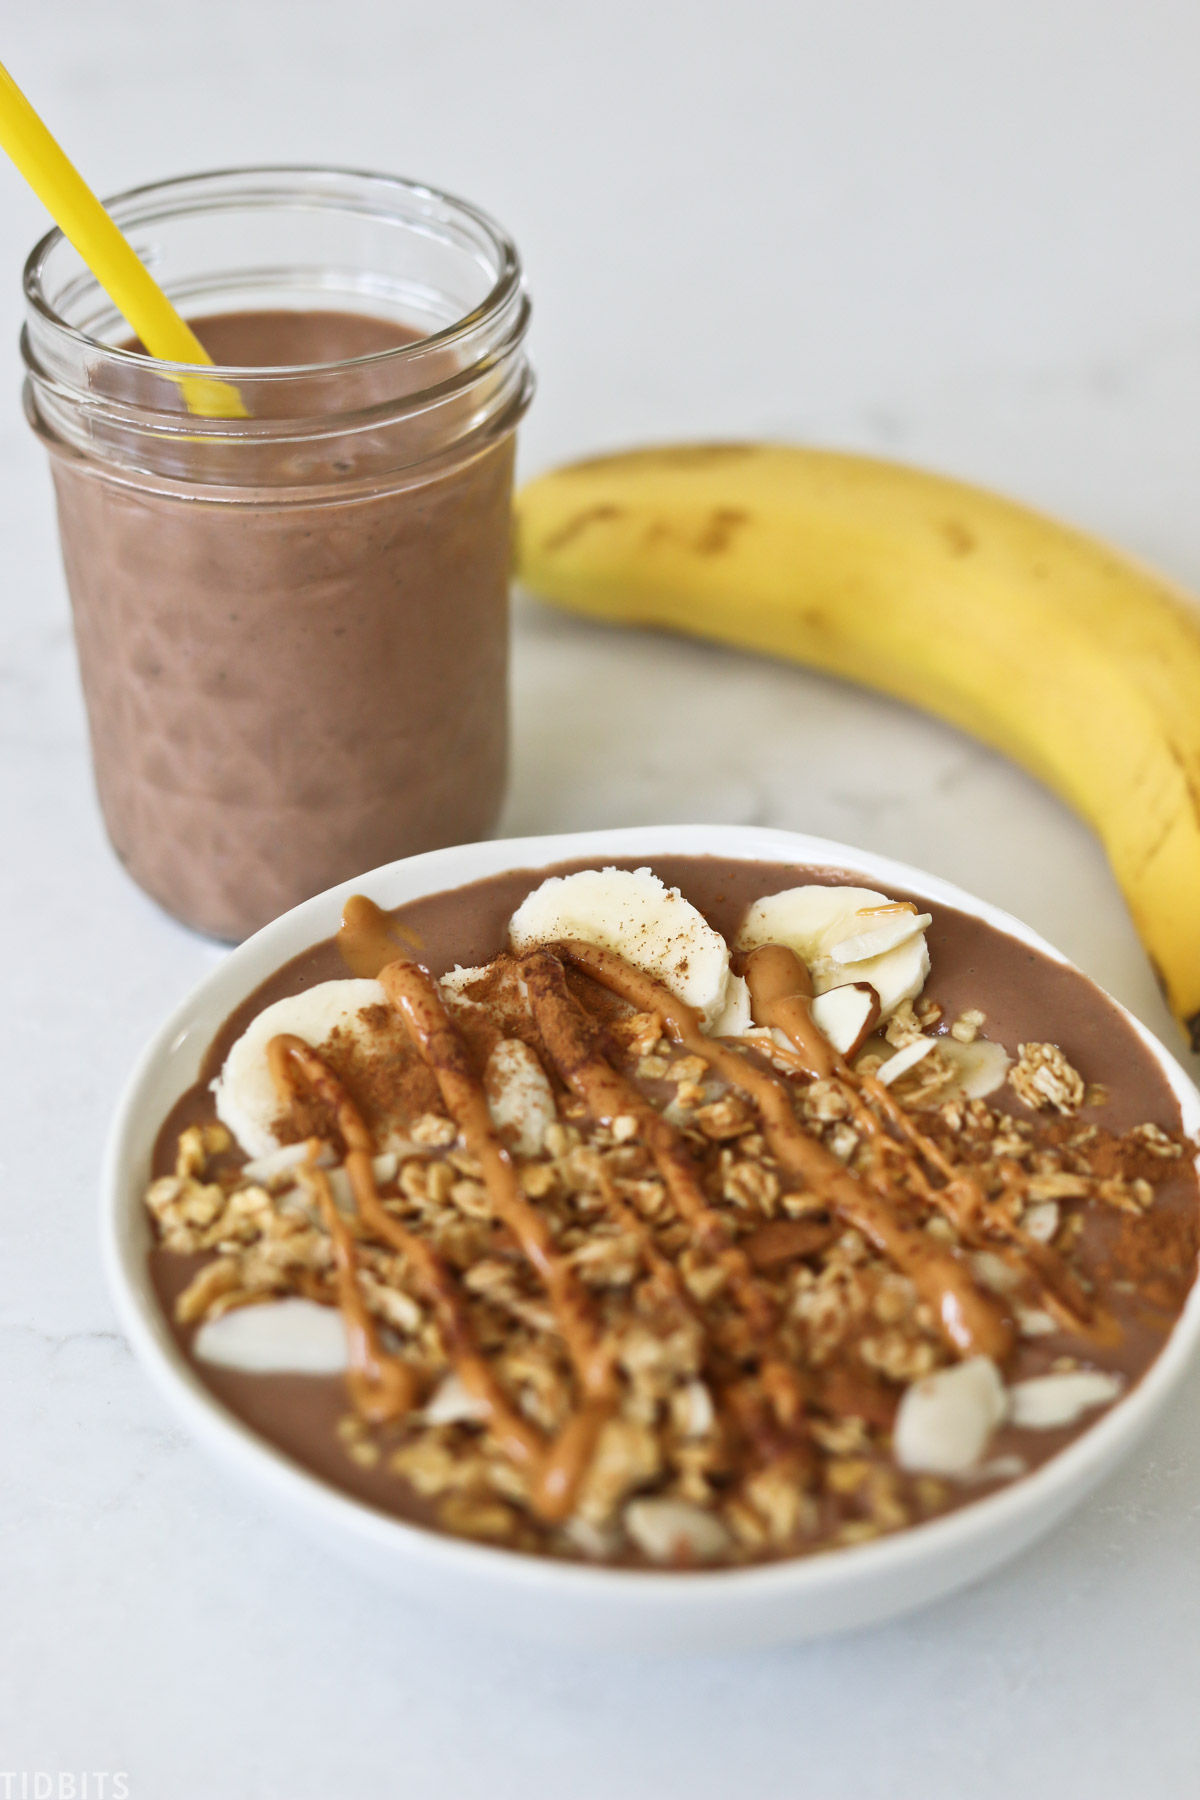 chocolate peanut butter smoothie bowl placed next to a banana and a mason jar filled with a smoothie containing similar ingredients